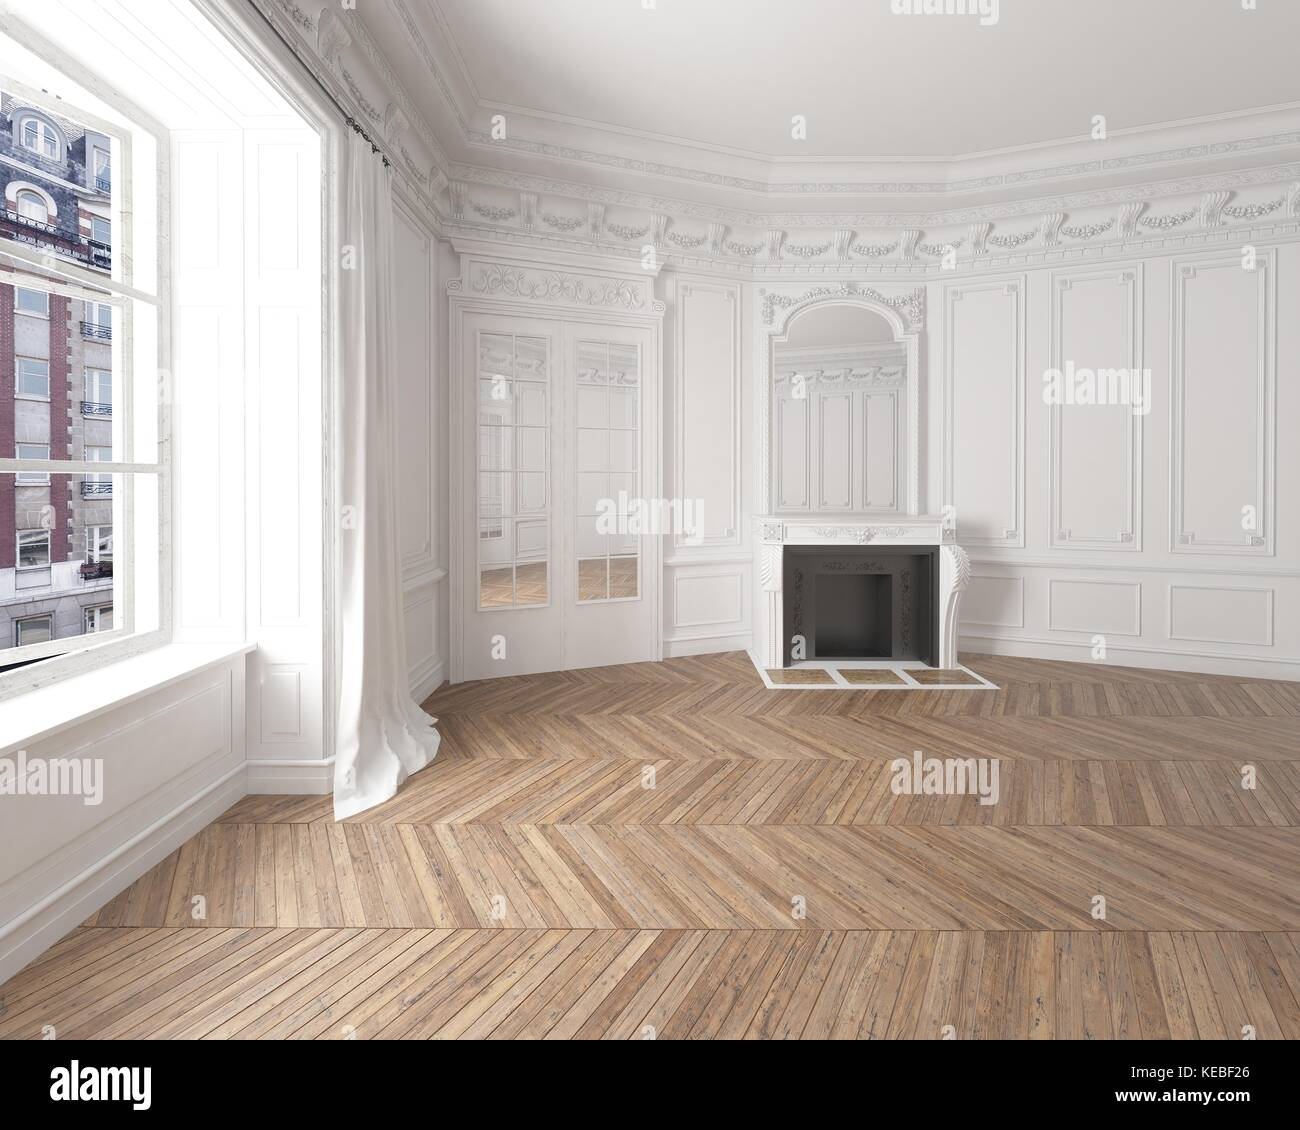 Empty Room: Empty Room Interior Classic Wainscoting Stock Photos